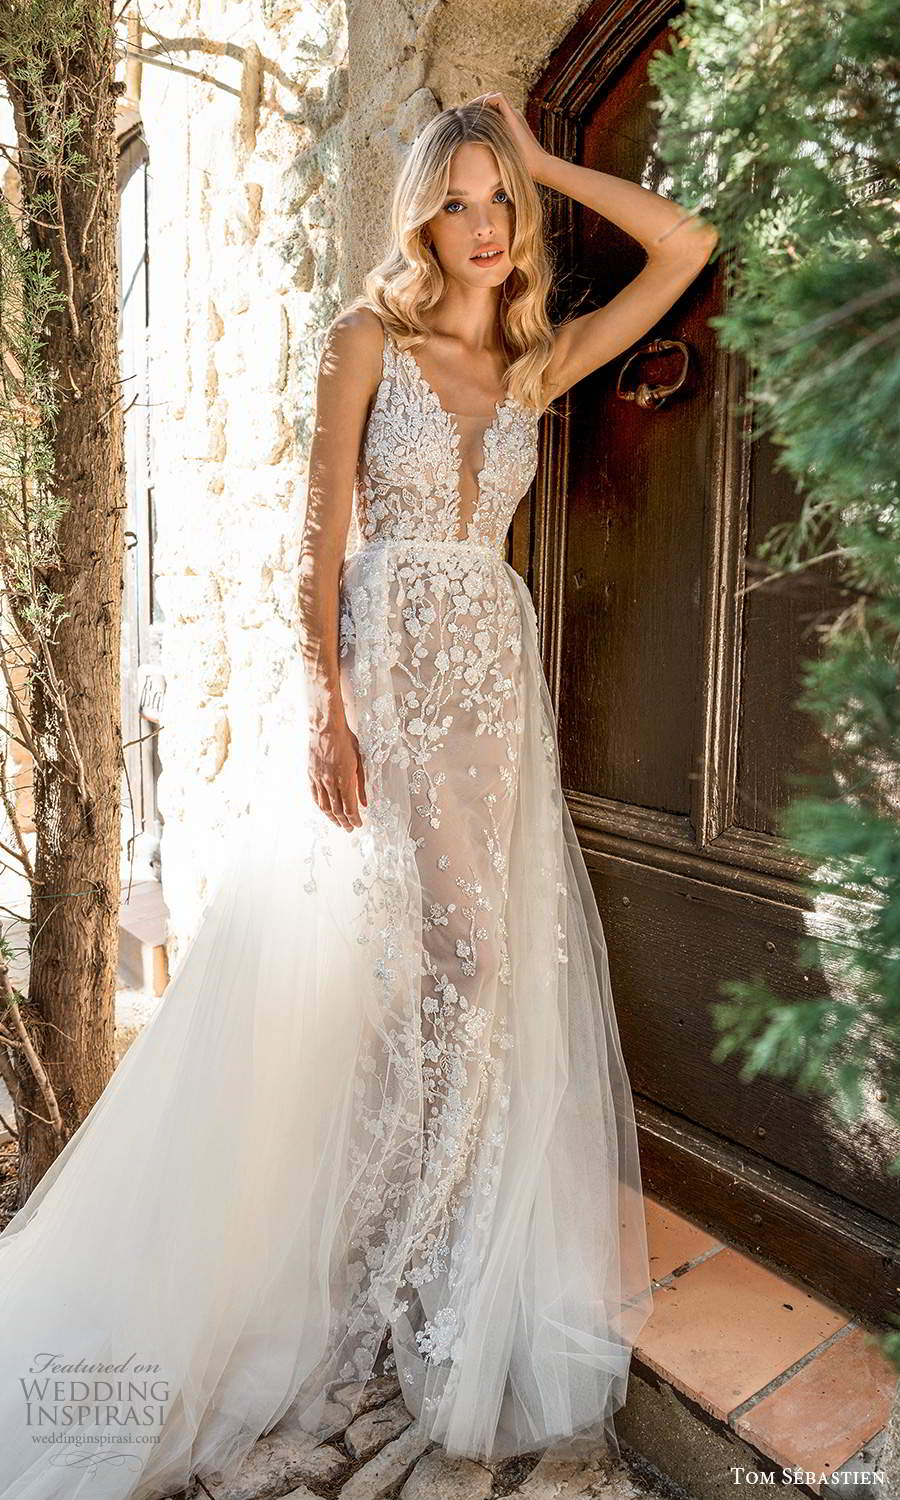 tom sebastien 2021 bridal provence sleeveless straps plunging v neckline fully embellished lace wedding dress a line ball gown overskirt chapel train (3) mv